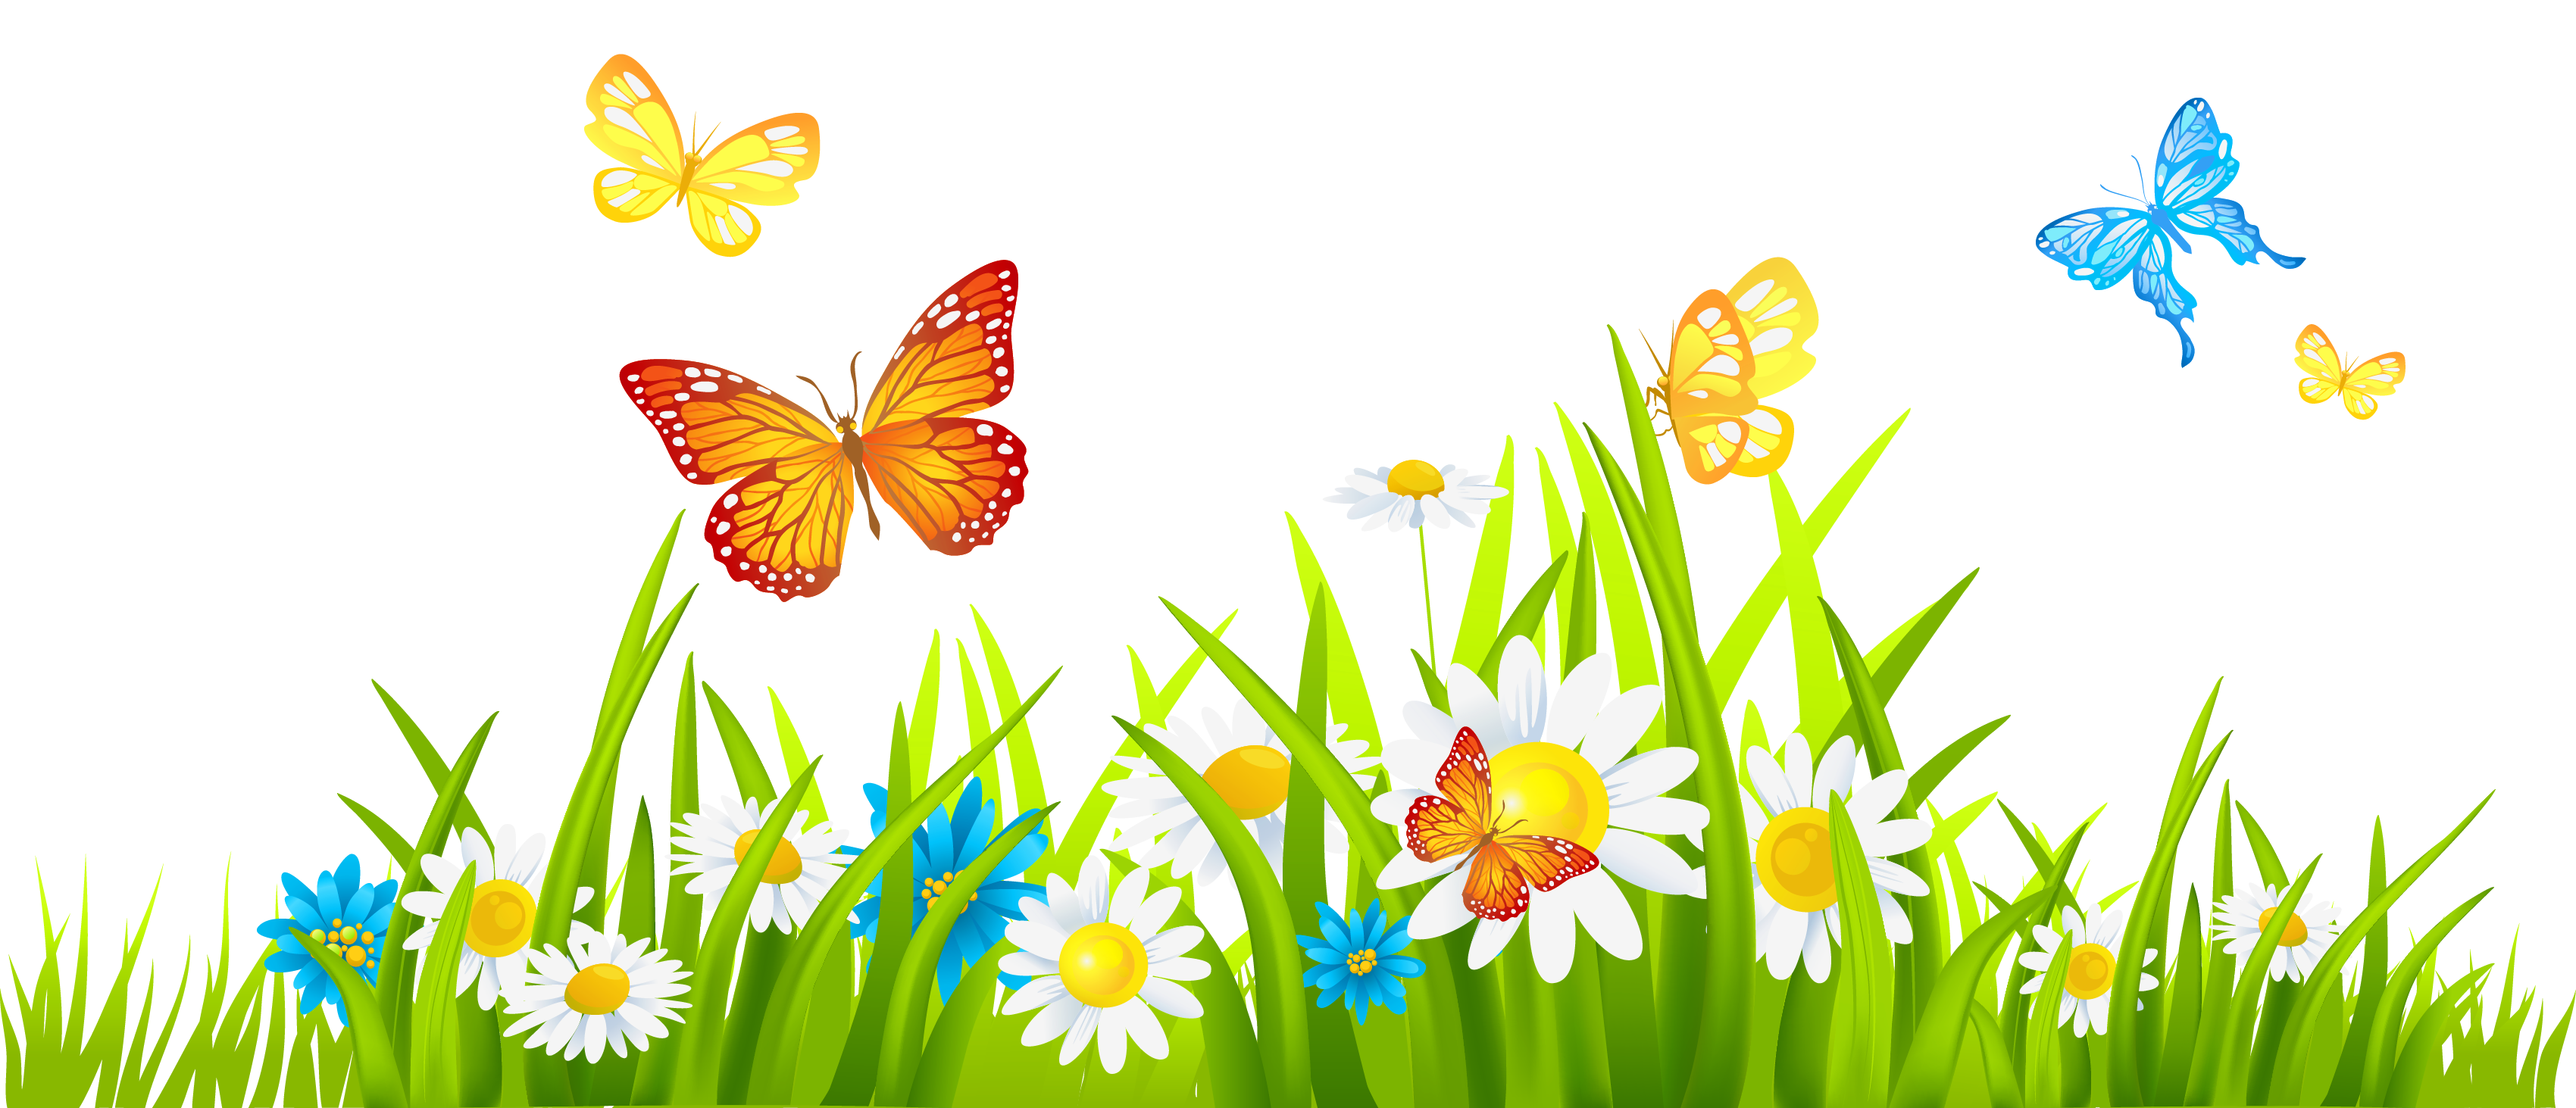 Clipart grass colorful. With tulips png peoplepng